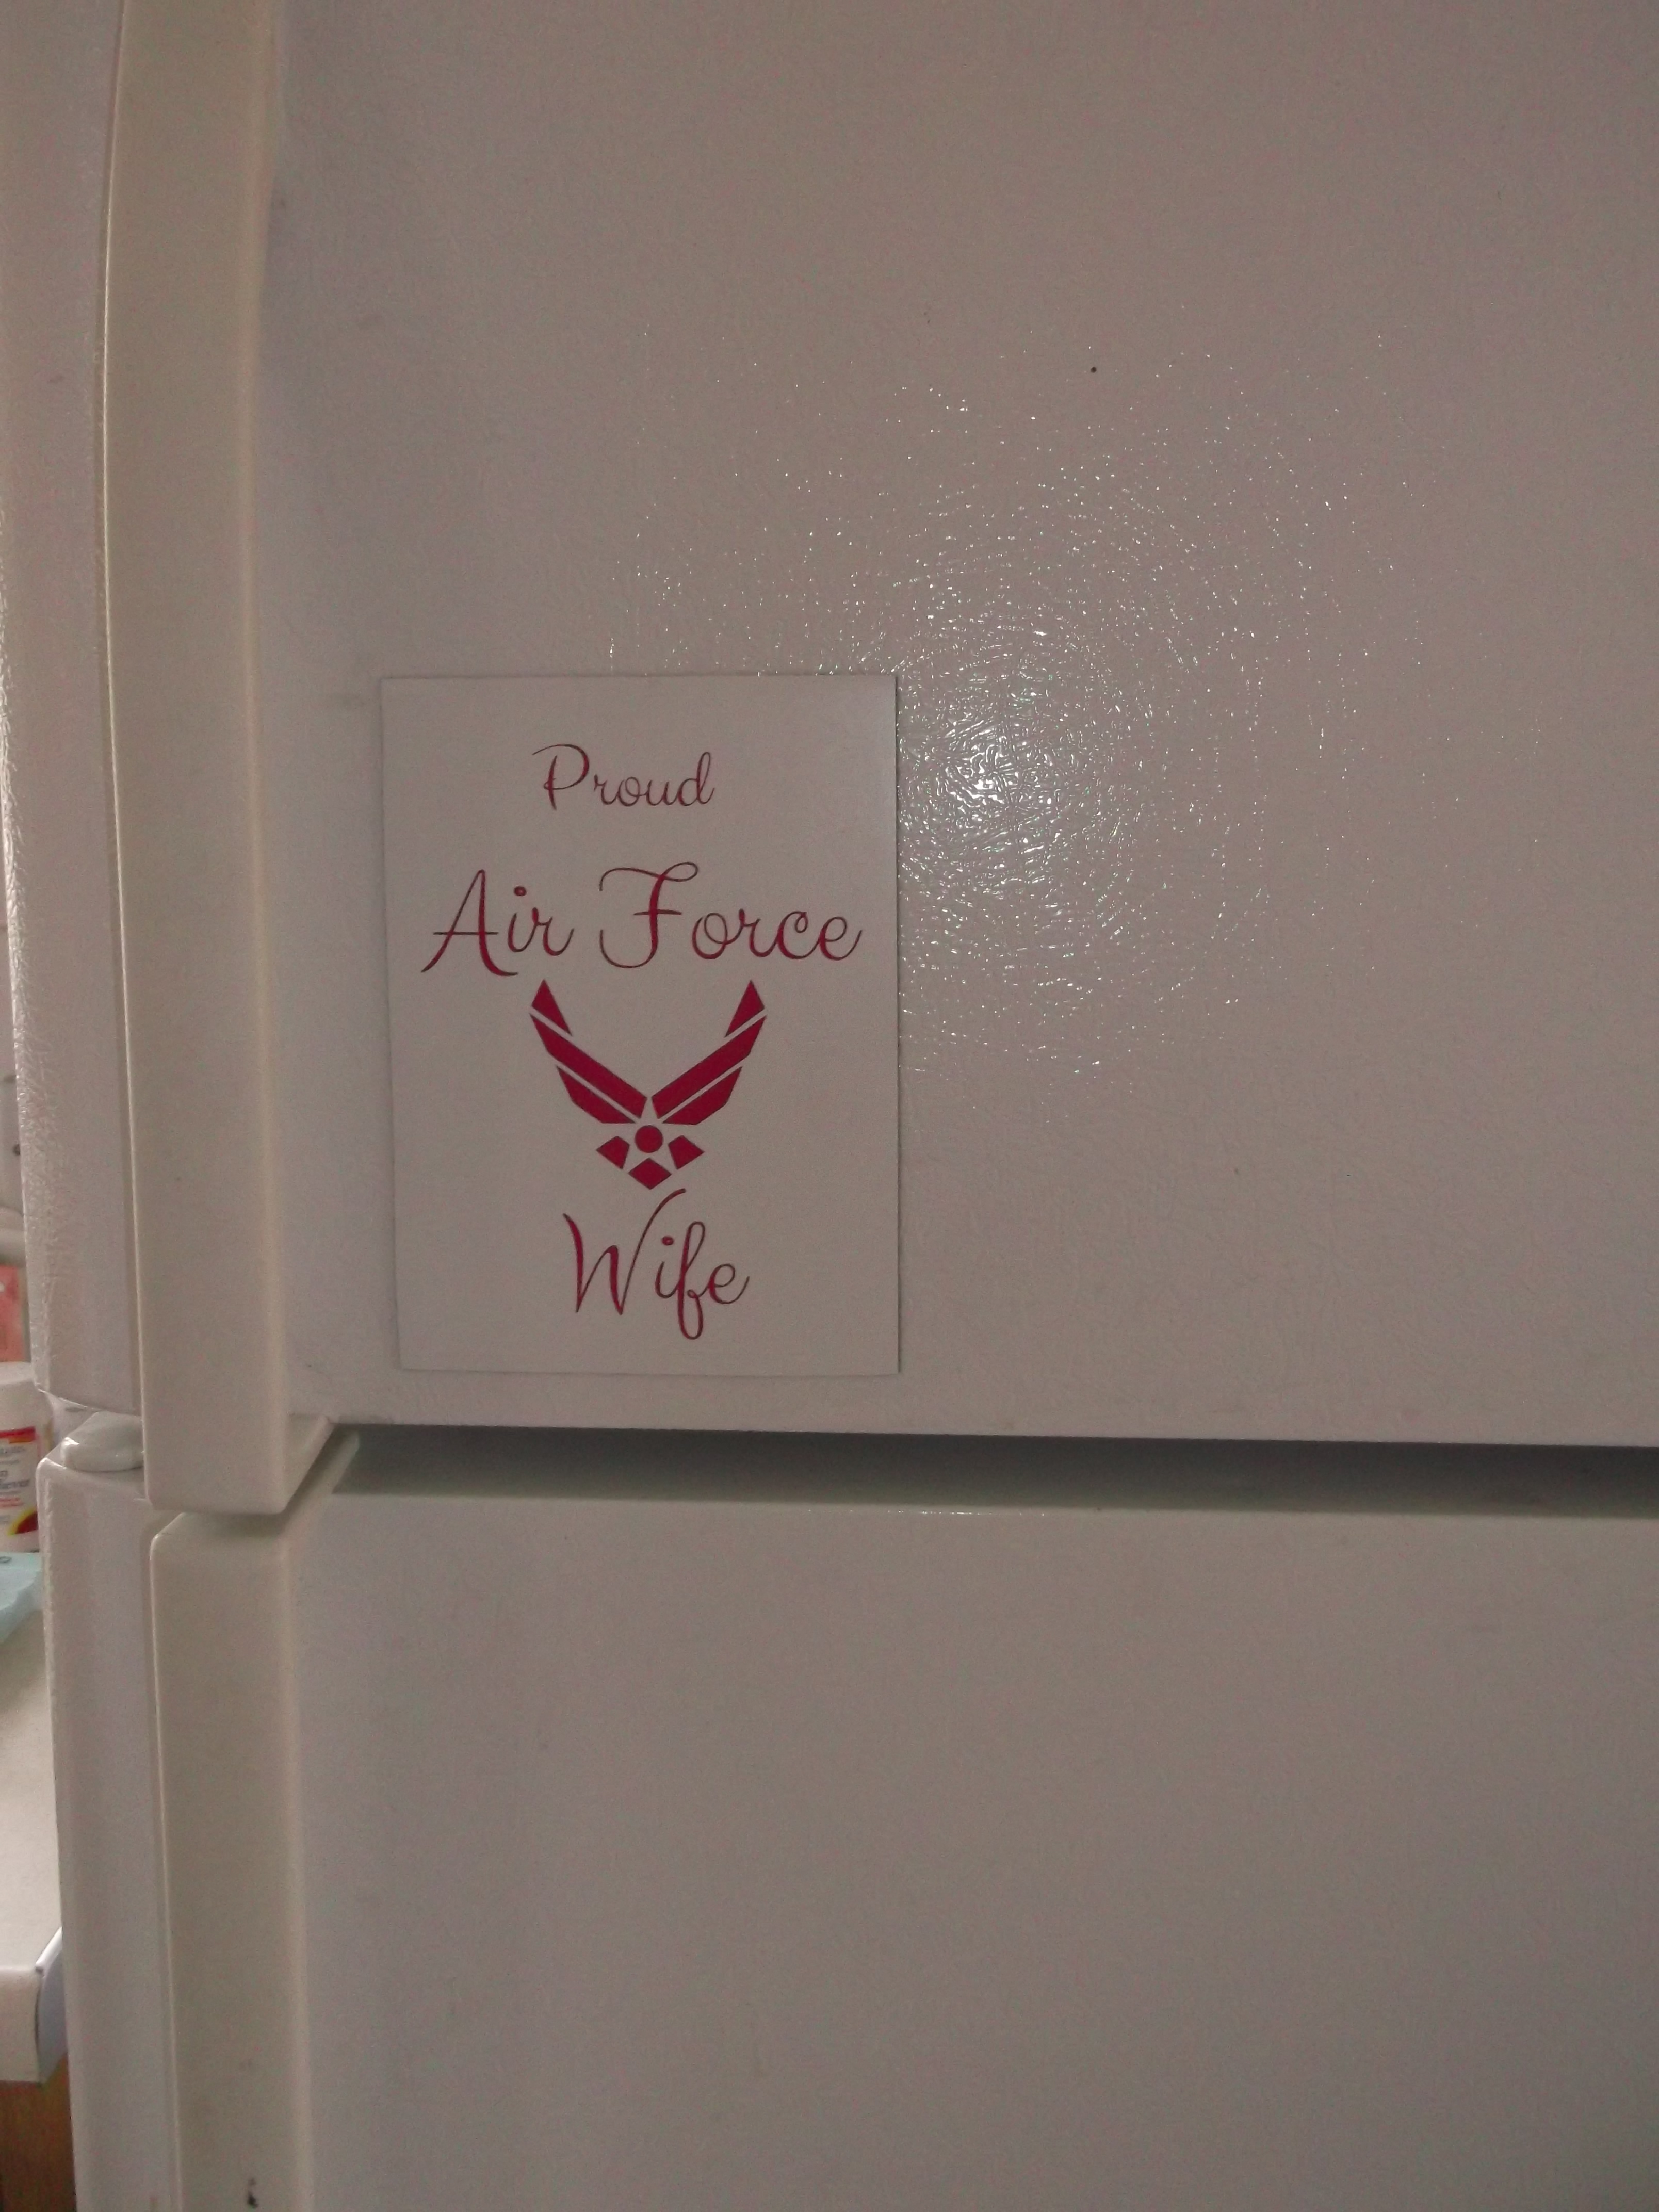 Proud Air Force Wife Customized Decal